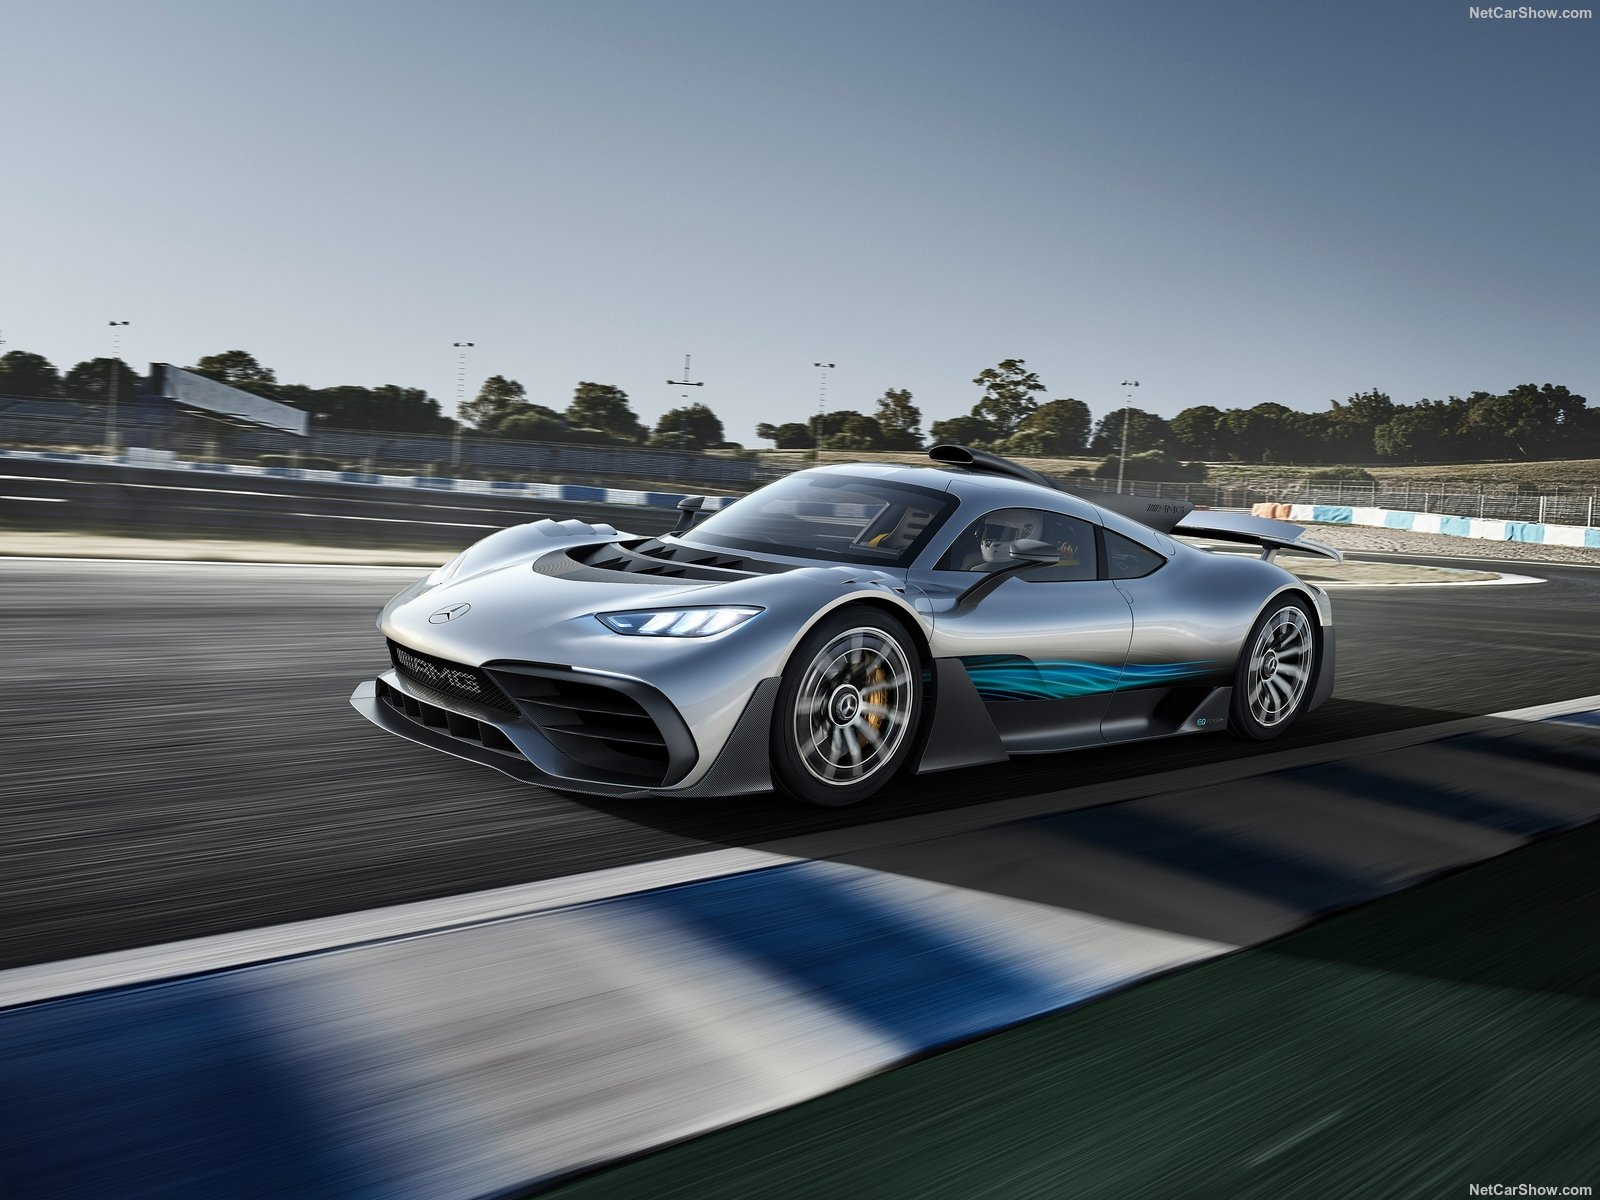 7_mercedes-benz-amg_project_one_concept-2017-1600-01.jpg